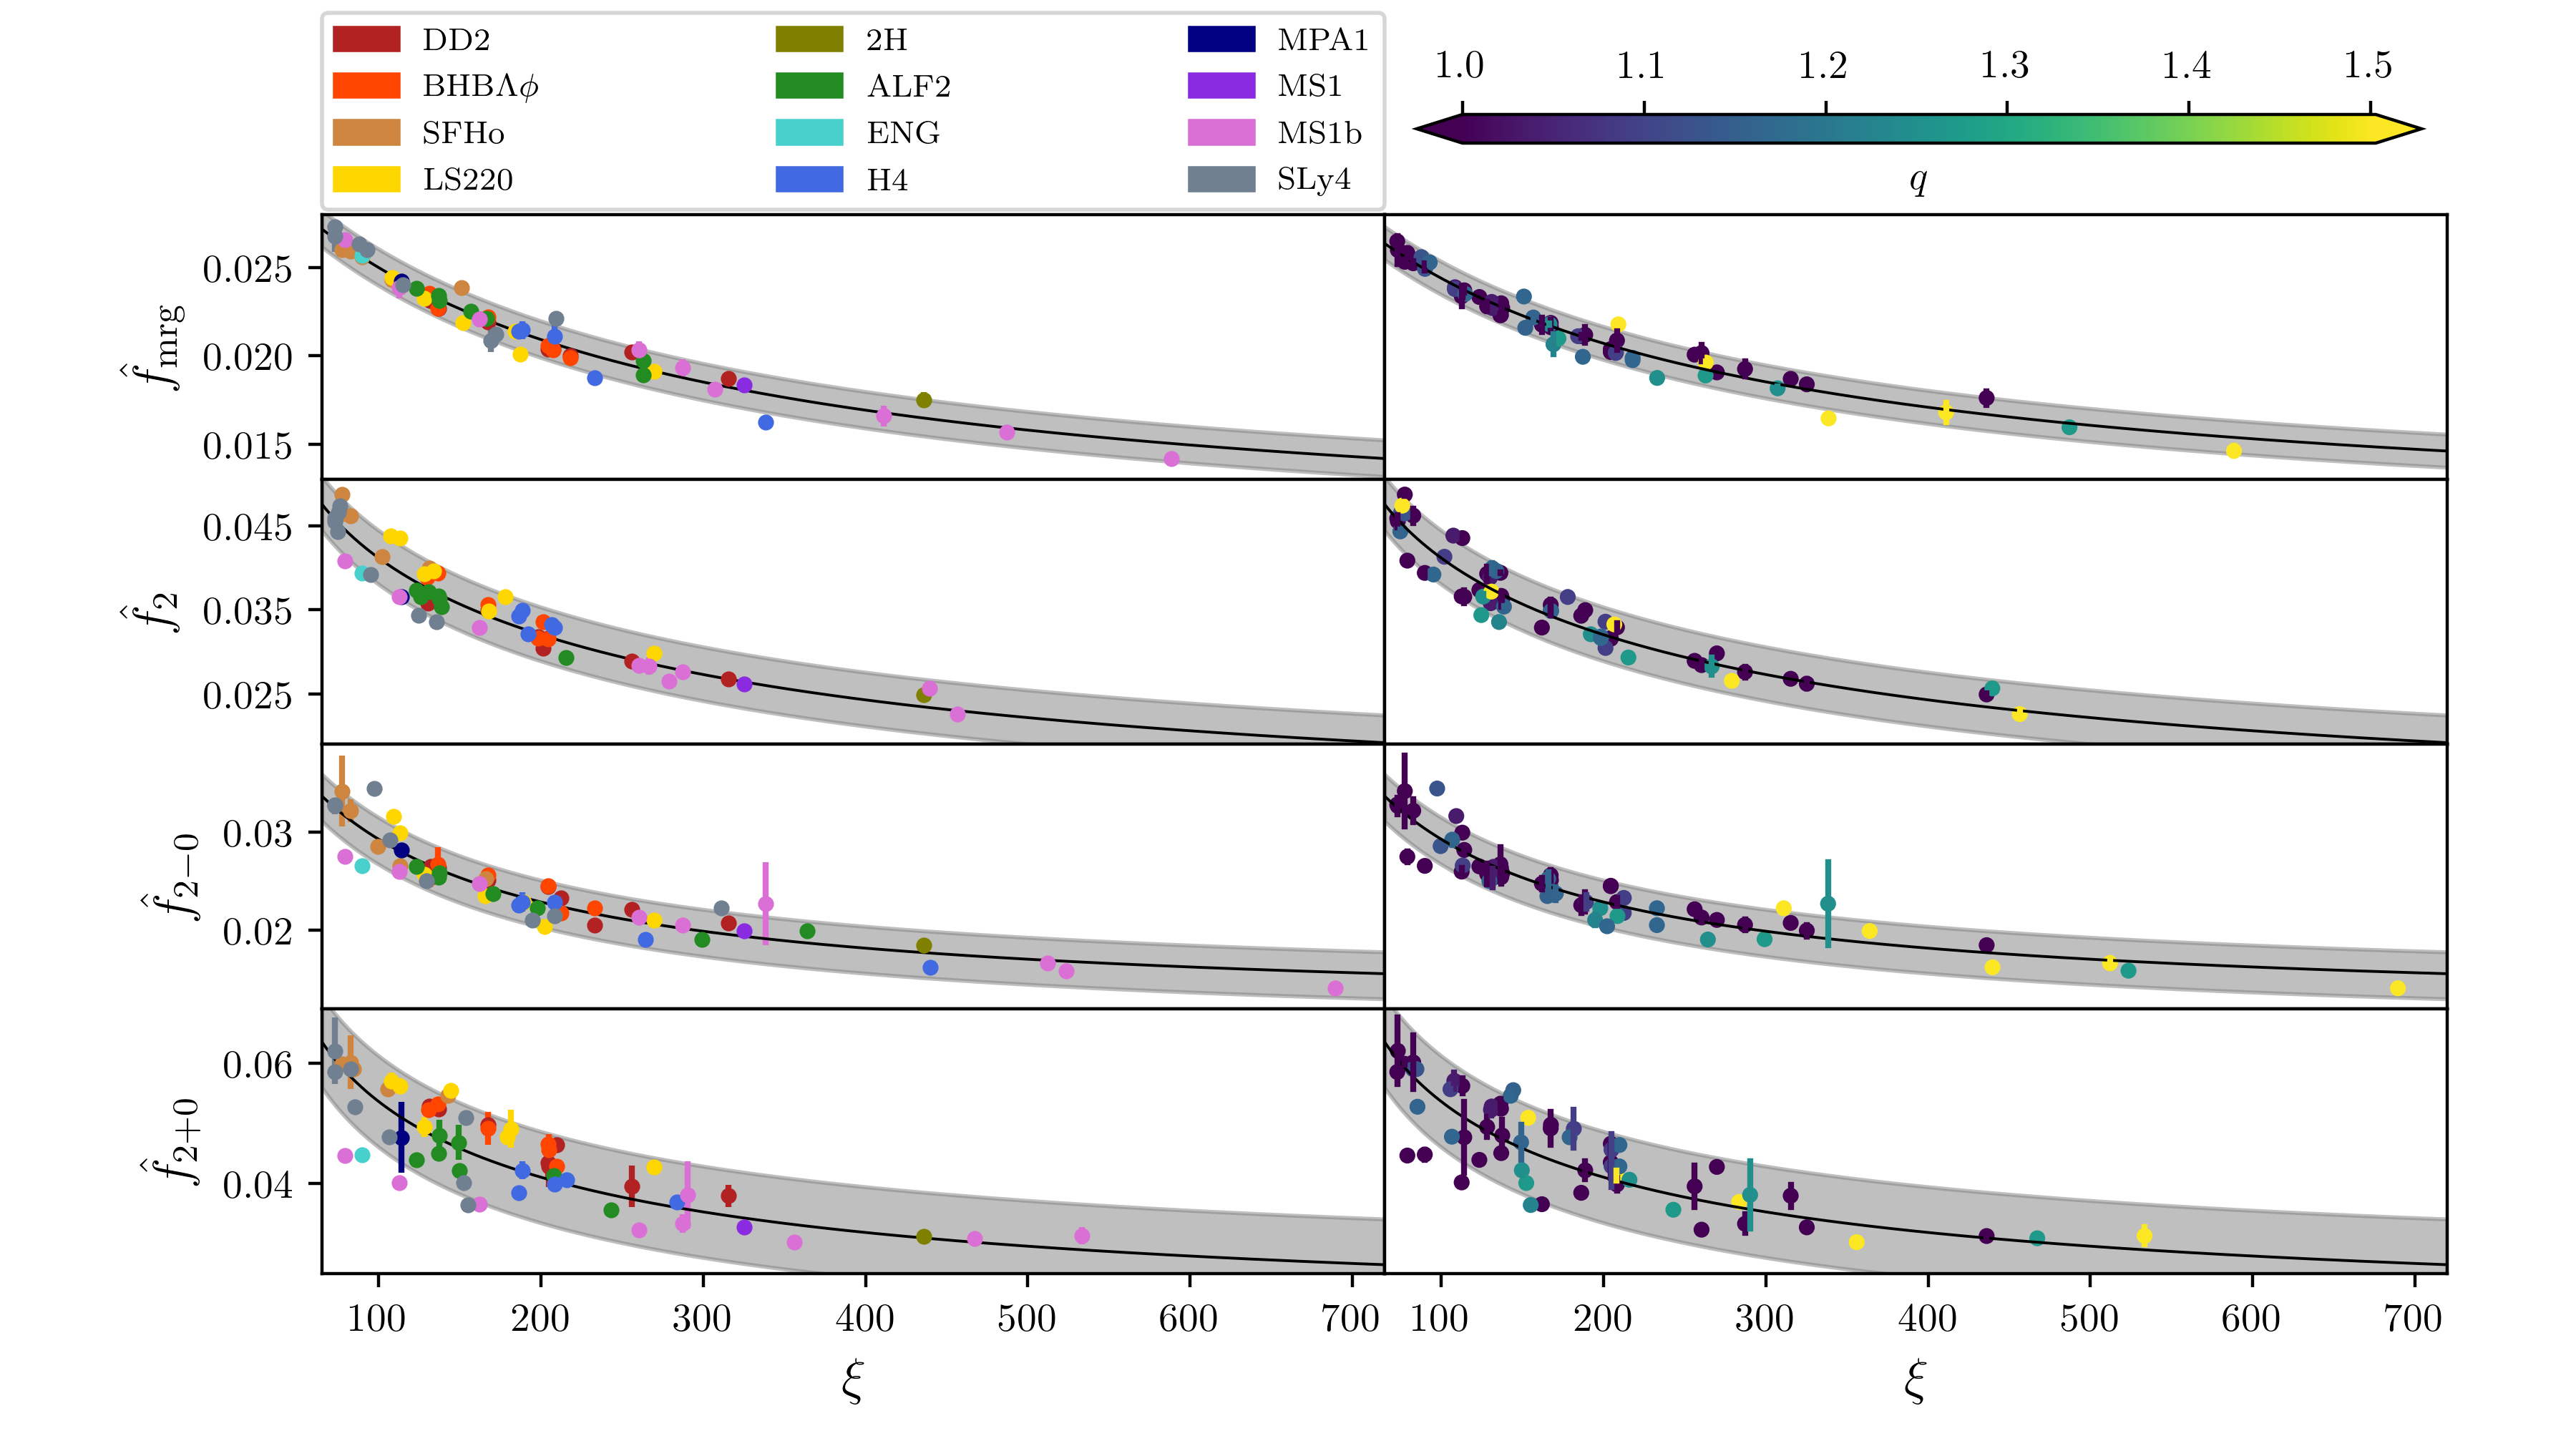 Characteristic frequencies information from NR simulations. Markers represent the frequencies extracted from the NR data and the uncertainties are estimated using simulations at different resolutions; the black lines are the fits and the grey bands are the 90% credible regions. Left and right panels show the same data: the colors on the left panel correspond to the EOS variation, on the right panel to the mass ratio.